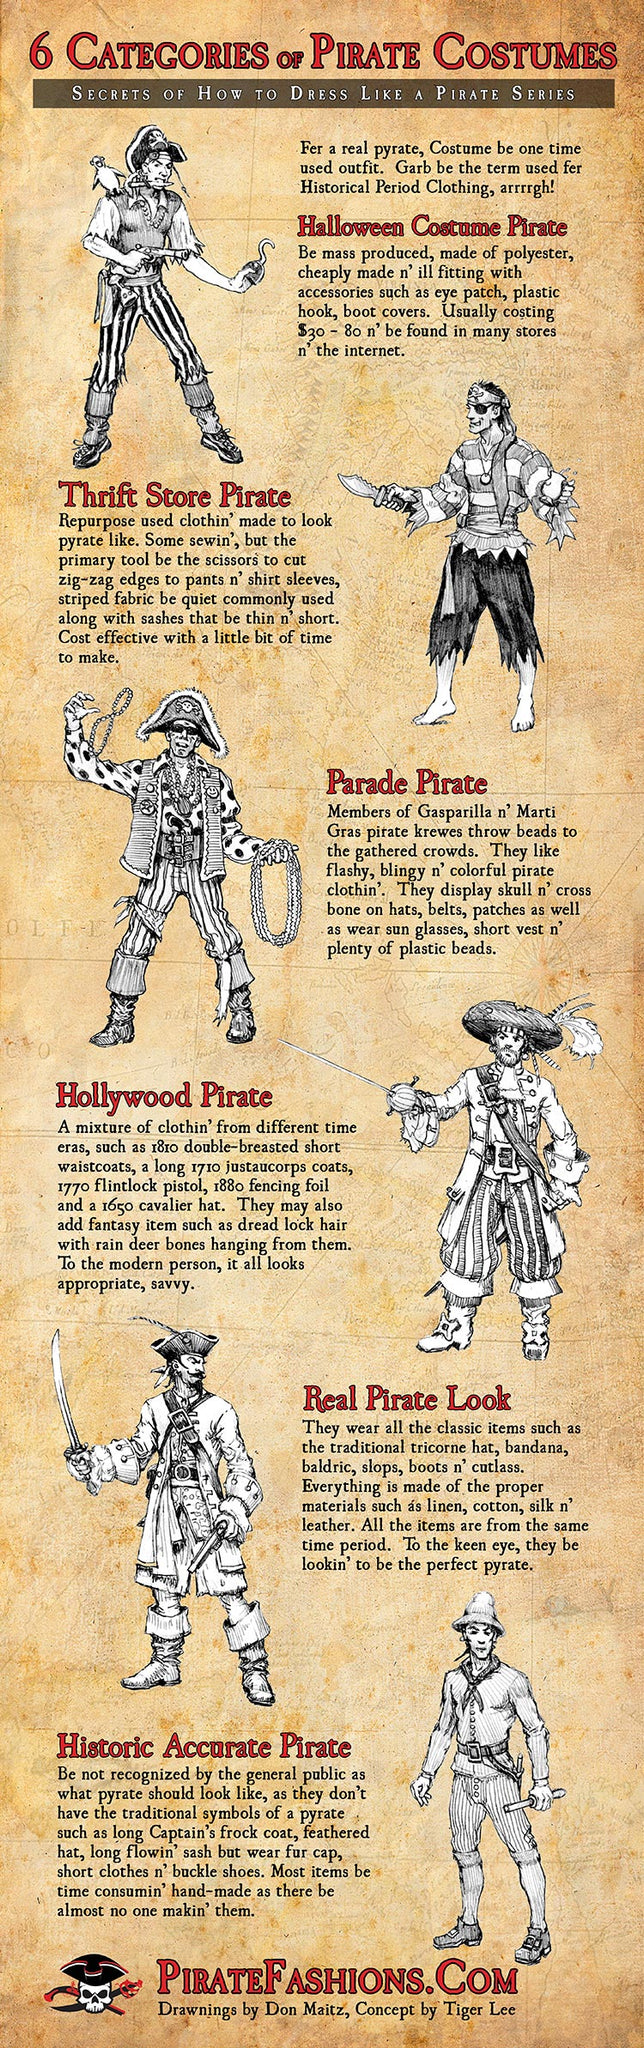 6 Types of Pirate Costumes  sc 1 st  Pirate Fashions & Article 1: 6 Types of Pirate Costumes u2013 Pirate Fashions